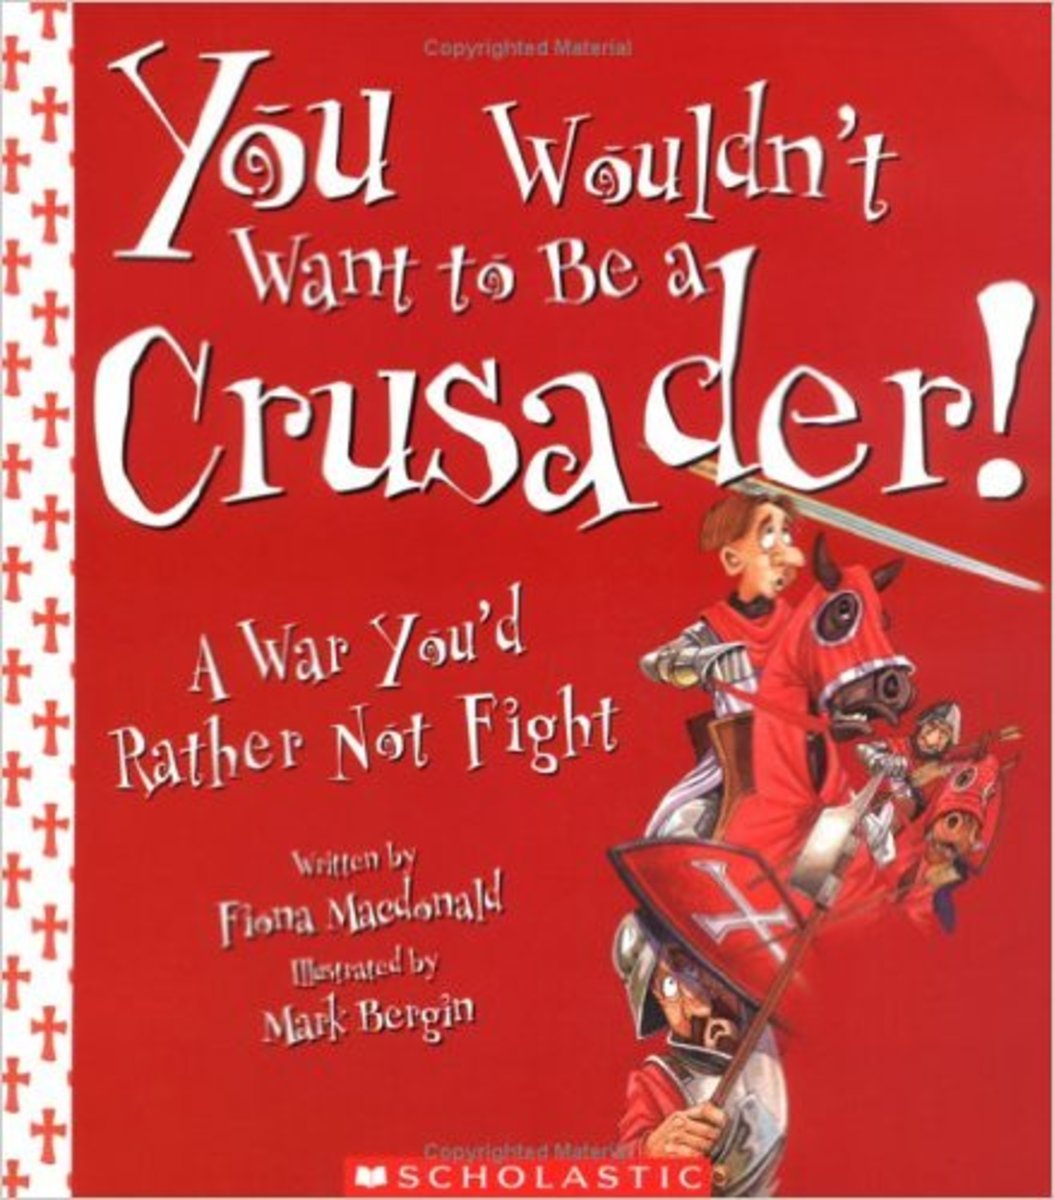 You Wouldn't Want to Be a Crusader!: A War You'd Rather Not Fight by Fiona MacDonald